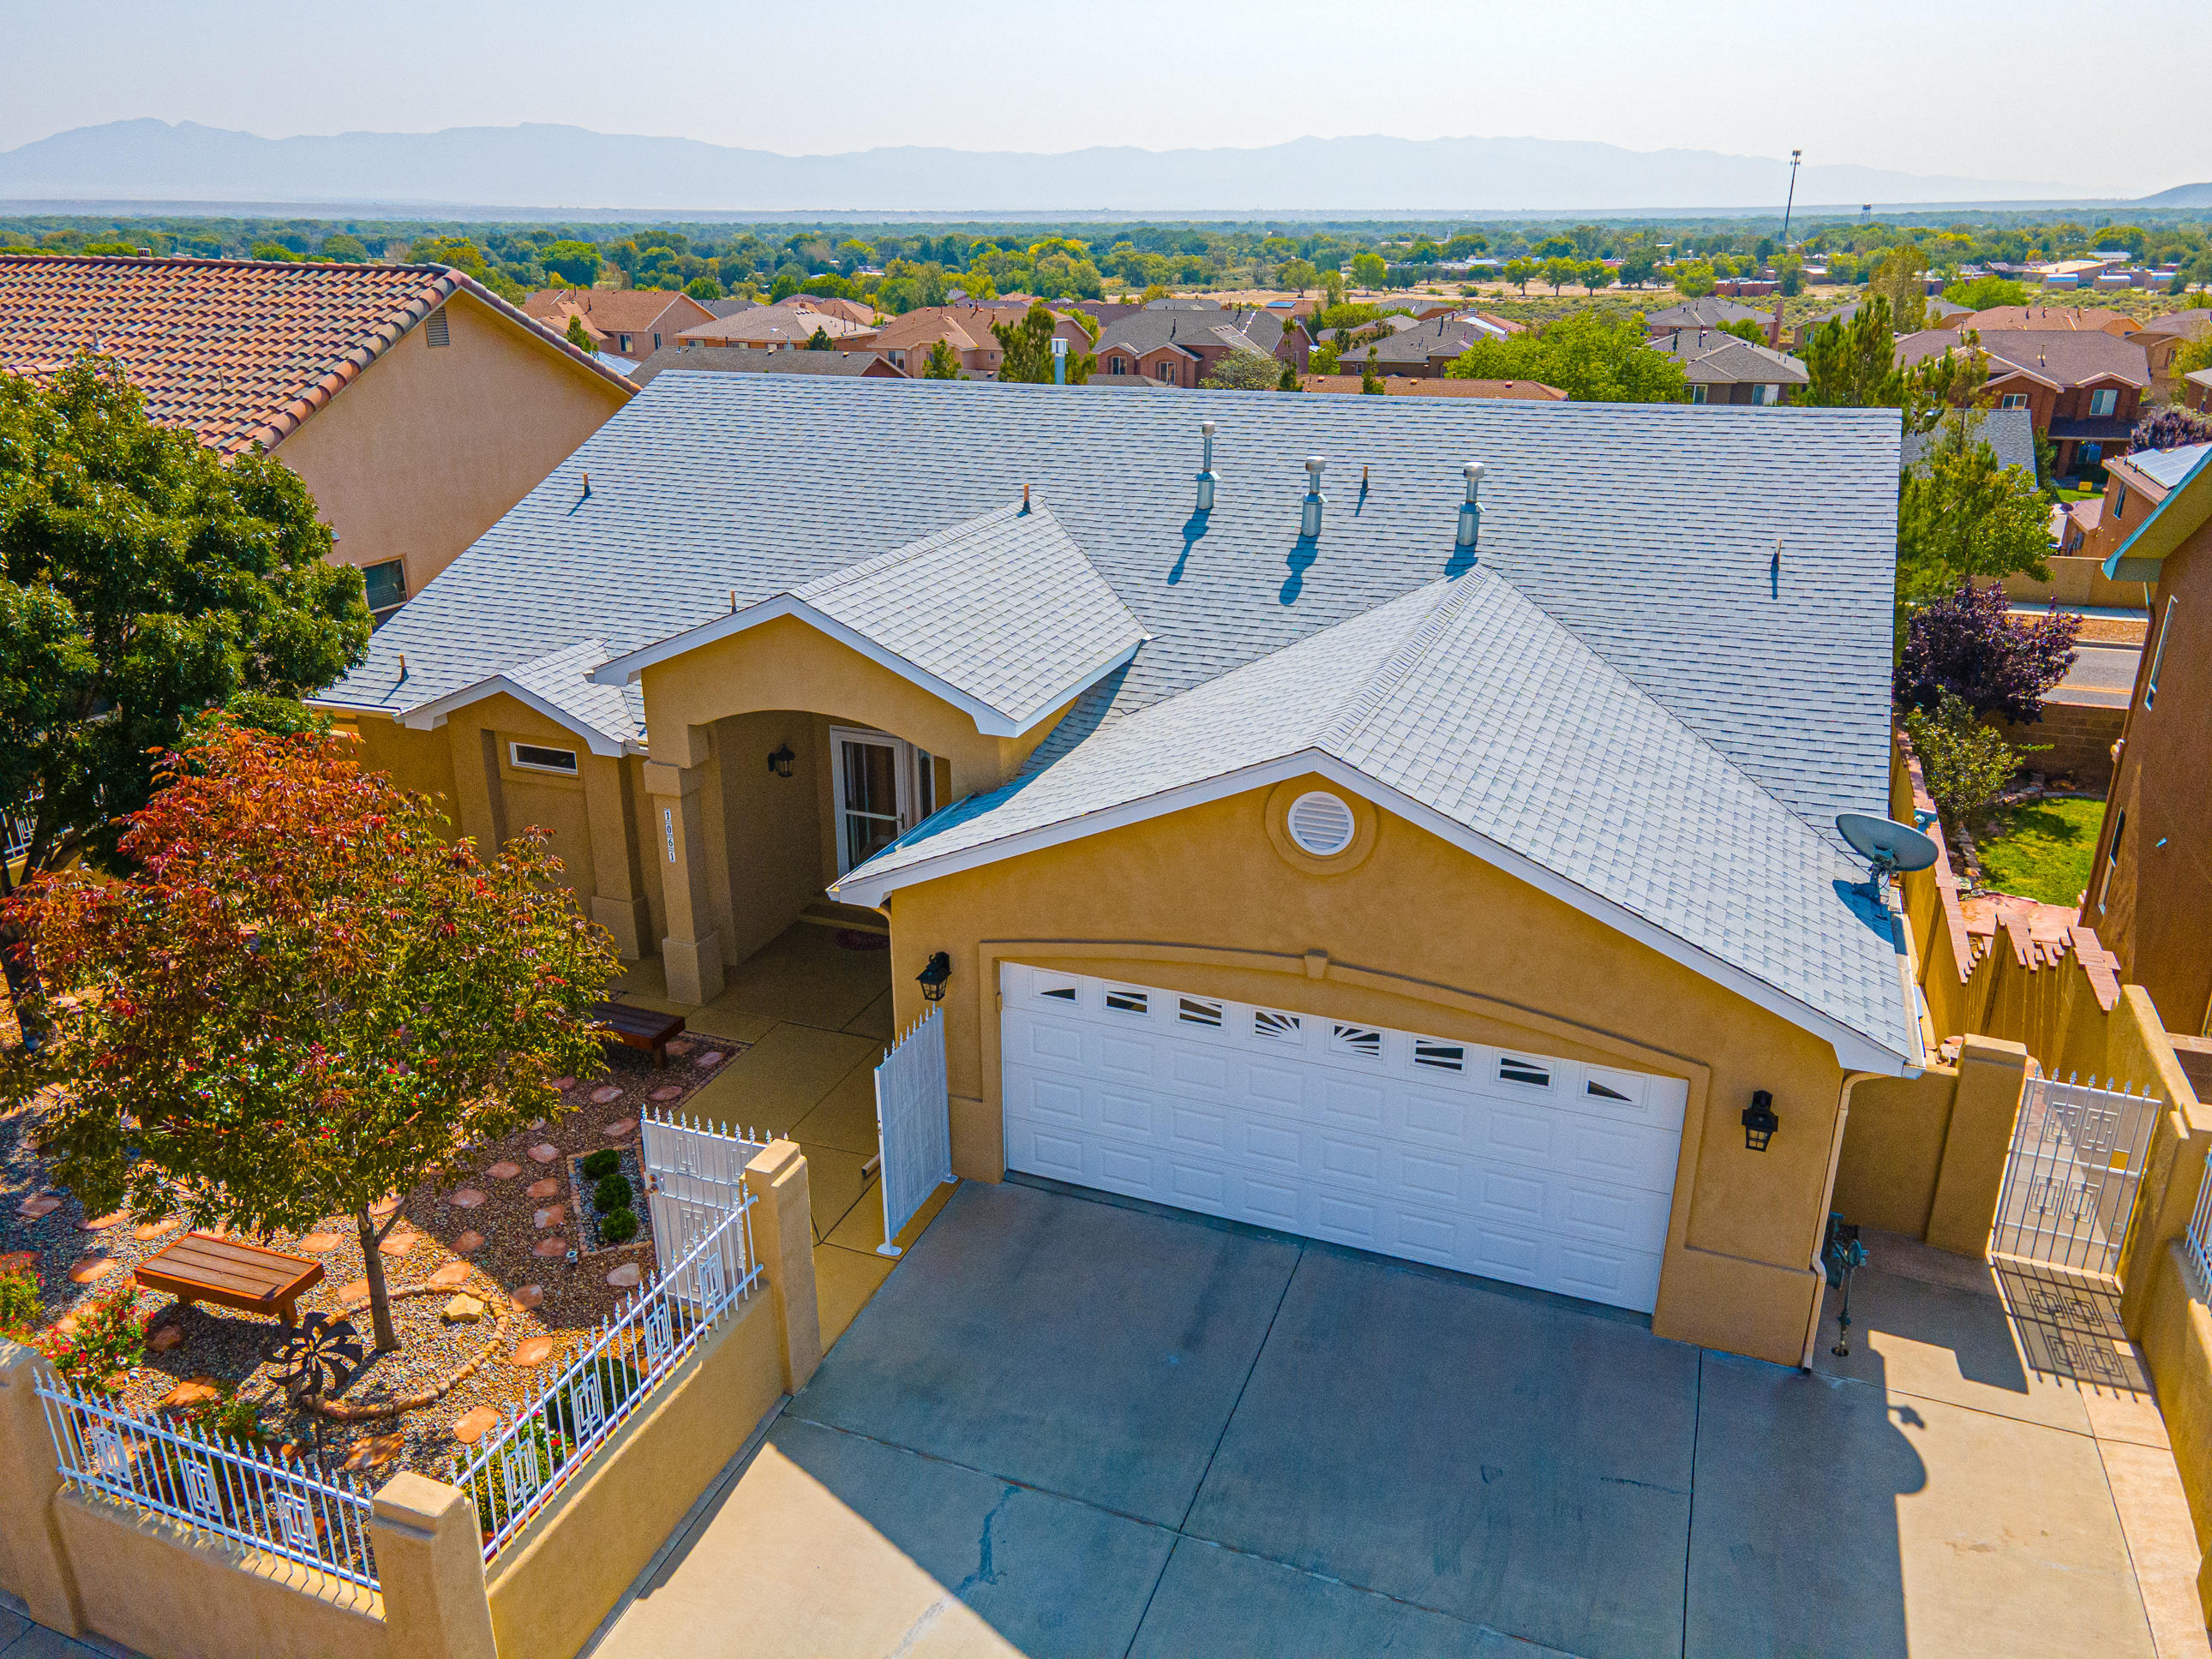 Wow! Beautiful custom home with fabulous mountain & city views from deck, master bedroom, living room & dining room.  Front of home appears to be single story with main living area at street level with downstairs 2 bedrooms, full bath with game/recreation room. Lots of upgrades include granite, appliances, lights, maple & oak wood flooring, crown molding, faucets/fixtures, hugely expanded deck & covered patio area, rain gutters & sidewalks all around the home, rock stairway on west side.  Yards professionally landscaped & on auto drip. Front courtyard fenced & secured, landscaped with benches, trees & beautiful planters filled with blooming plants. Walled backyard is a relaxing oasis with benches, trees & planter boxes.  Custom tool shop with dormer, electricity & HD shelving & workbench.